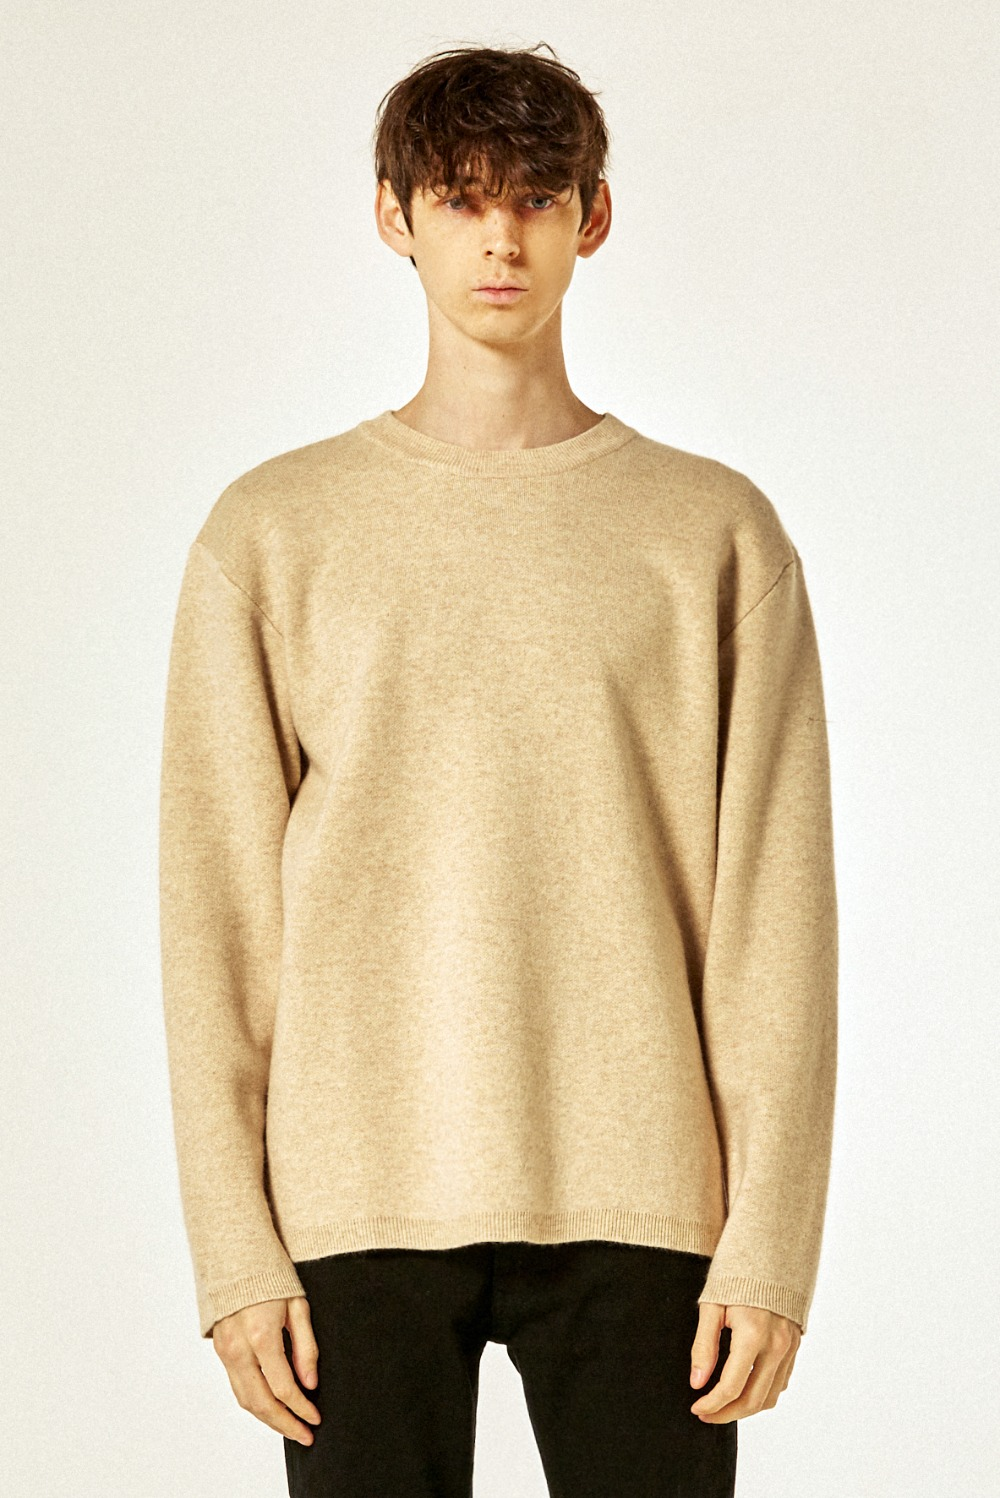 21 S/S Cashmere Knit (Cream)